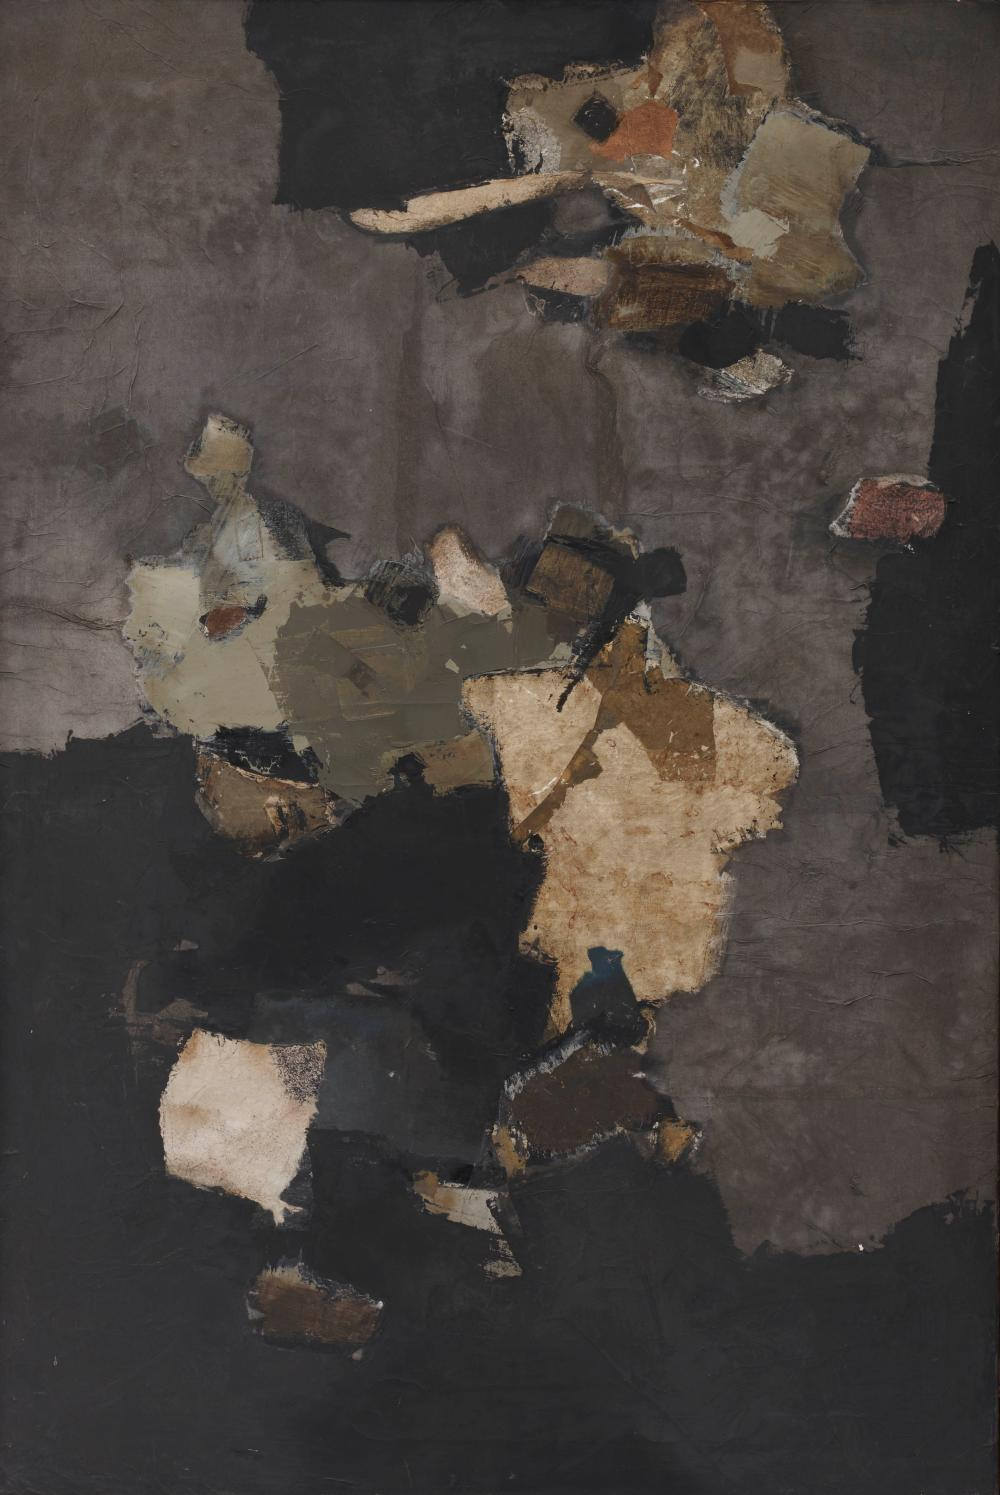 YUTAKA OHASHI, (Japanese/American, 1923-1989), Chofu No. 2, 1960, oil and paper collage on canvas, 36 x 24 in., frame: 36 1/2 x 24 1/2 in.